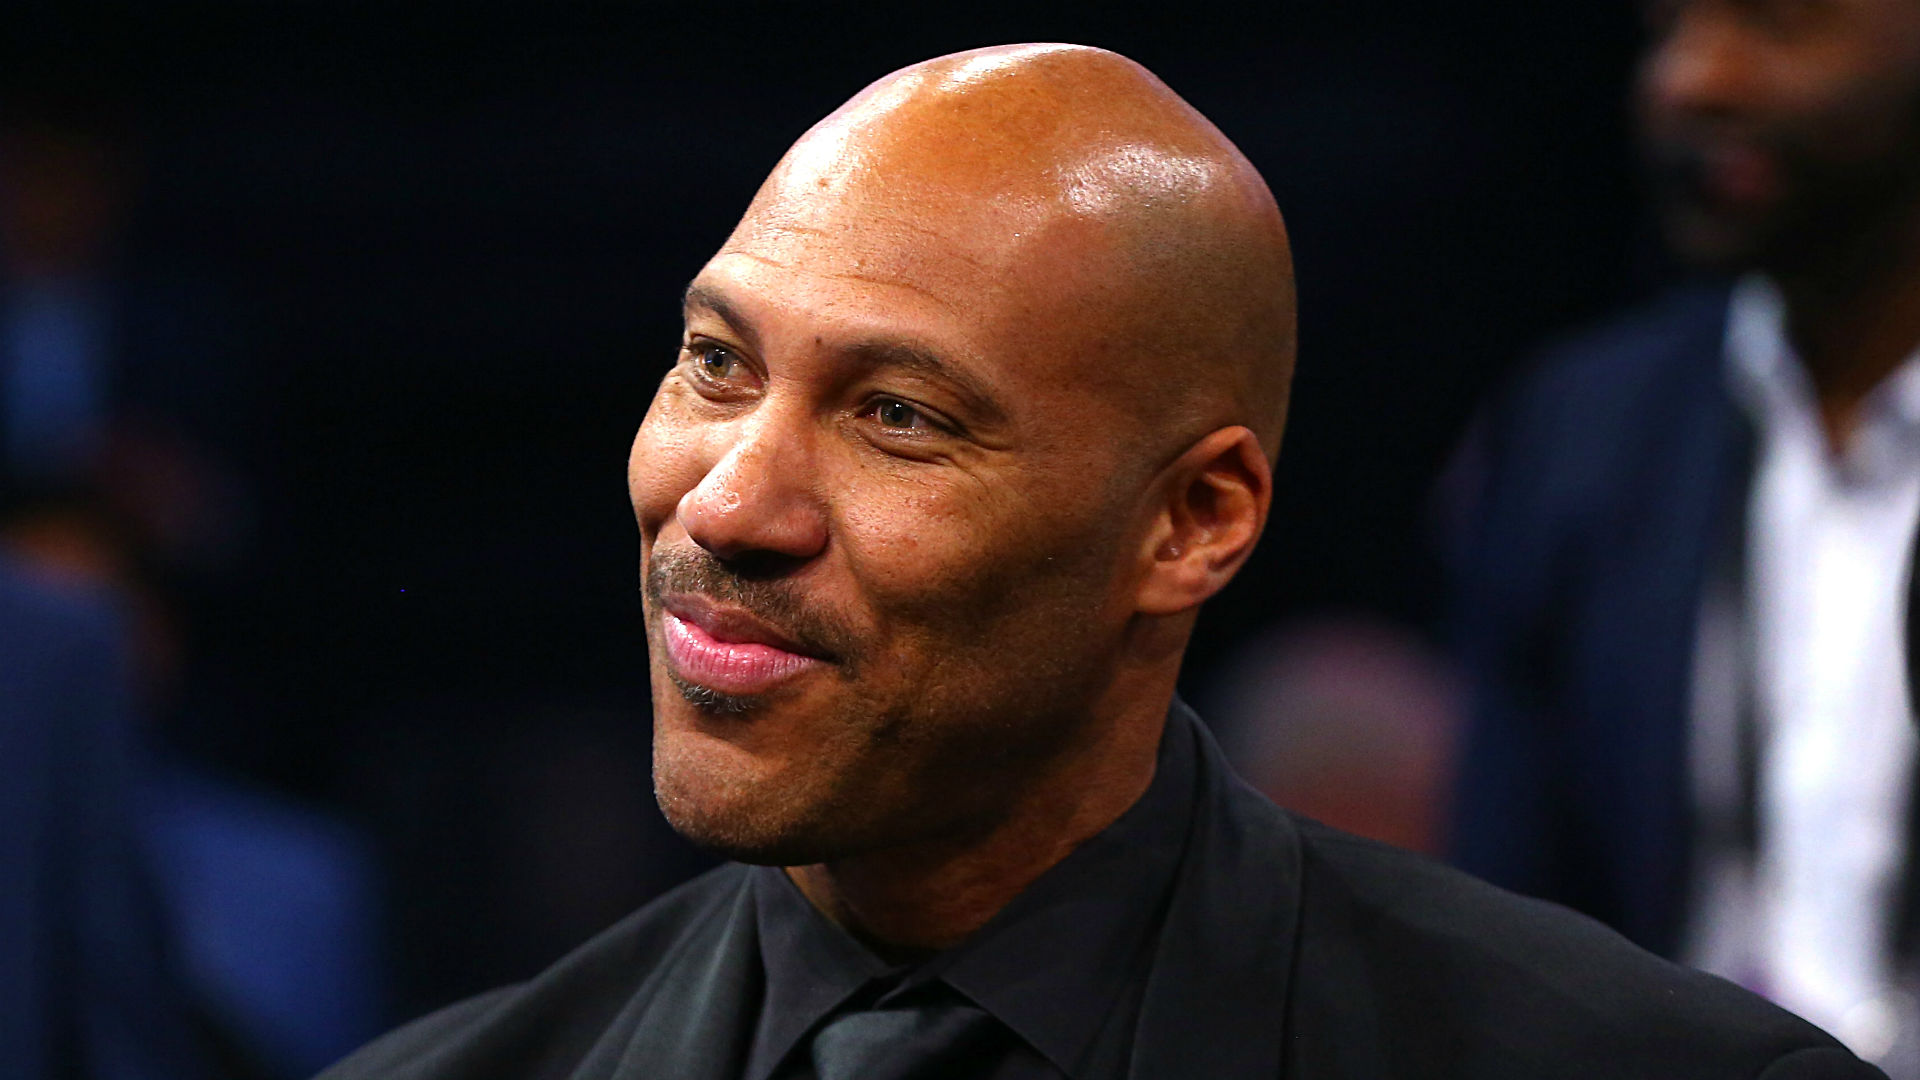 Lavar Ball Wikipedia >> LaVar Ball's wife Tina makes first public appearance since suffering a stroke.... : Sporting ...